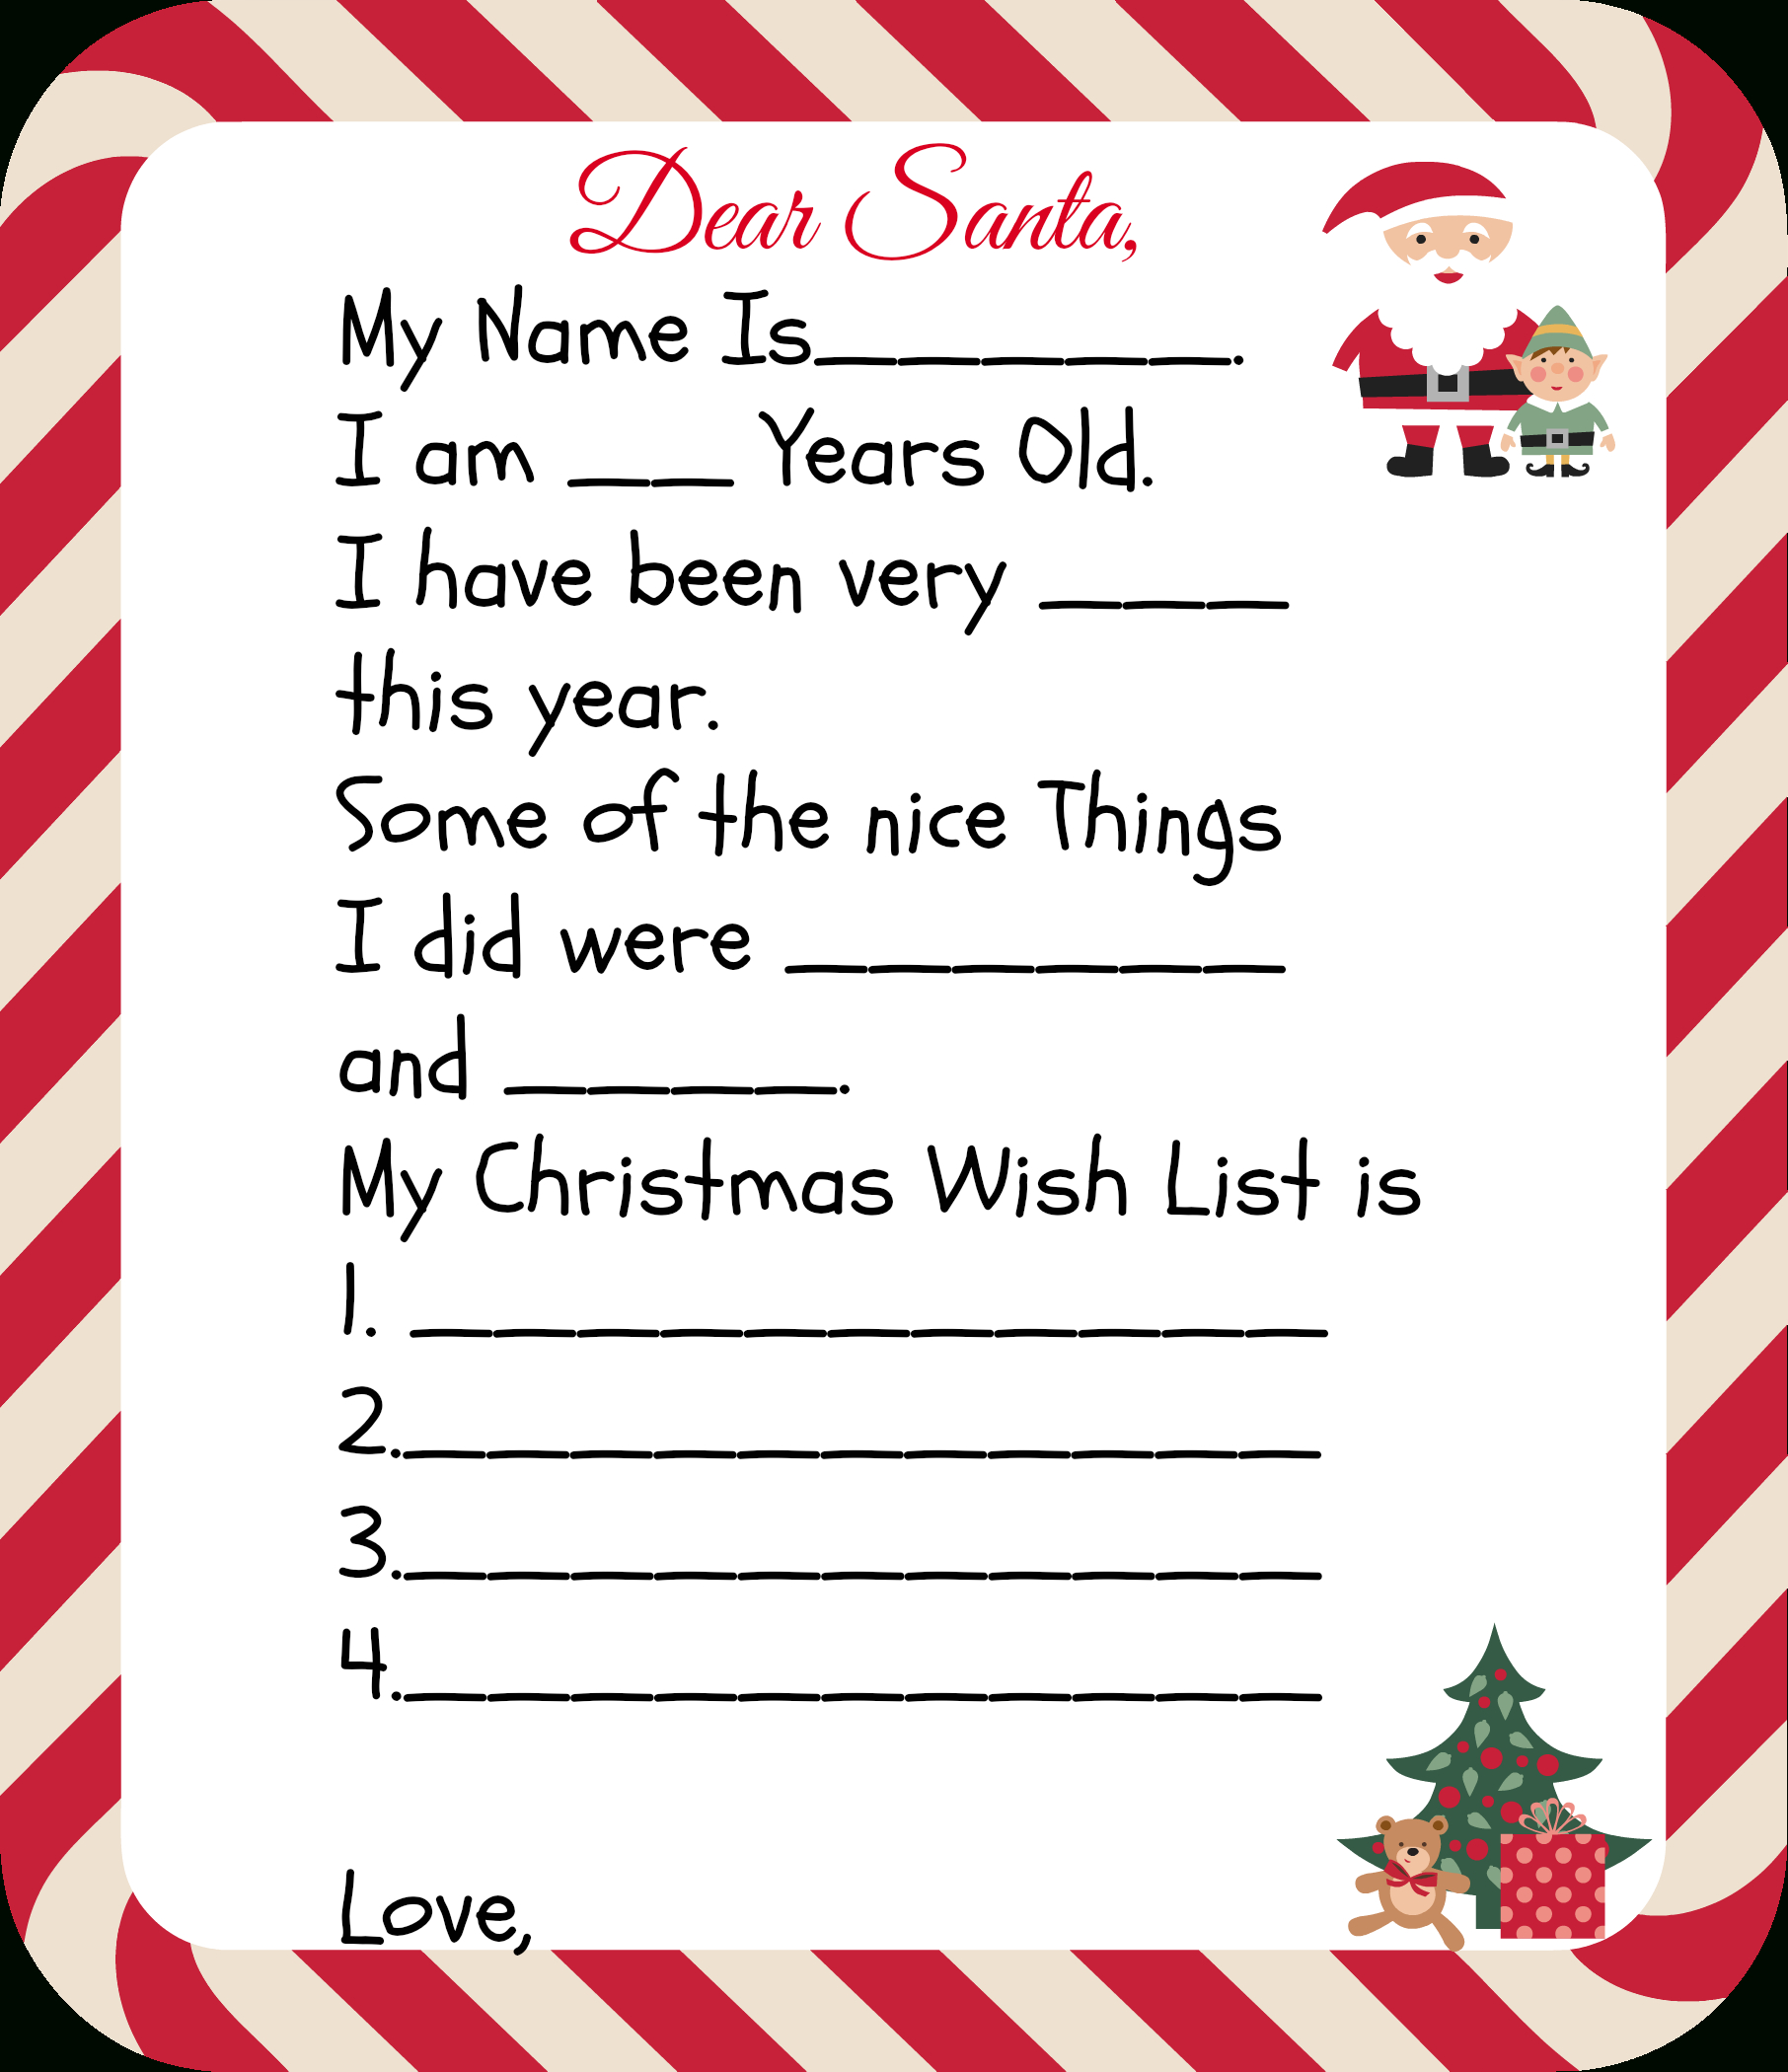 Free Printable Santa Letters For Kids | Holiday Ideas: Christmas - Free Printable Santa Letter Paper